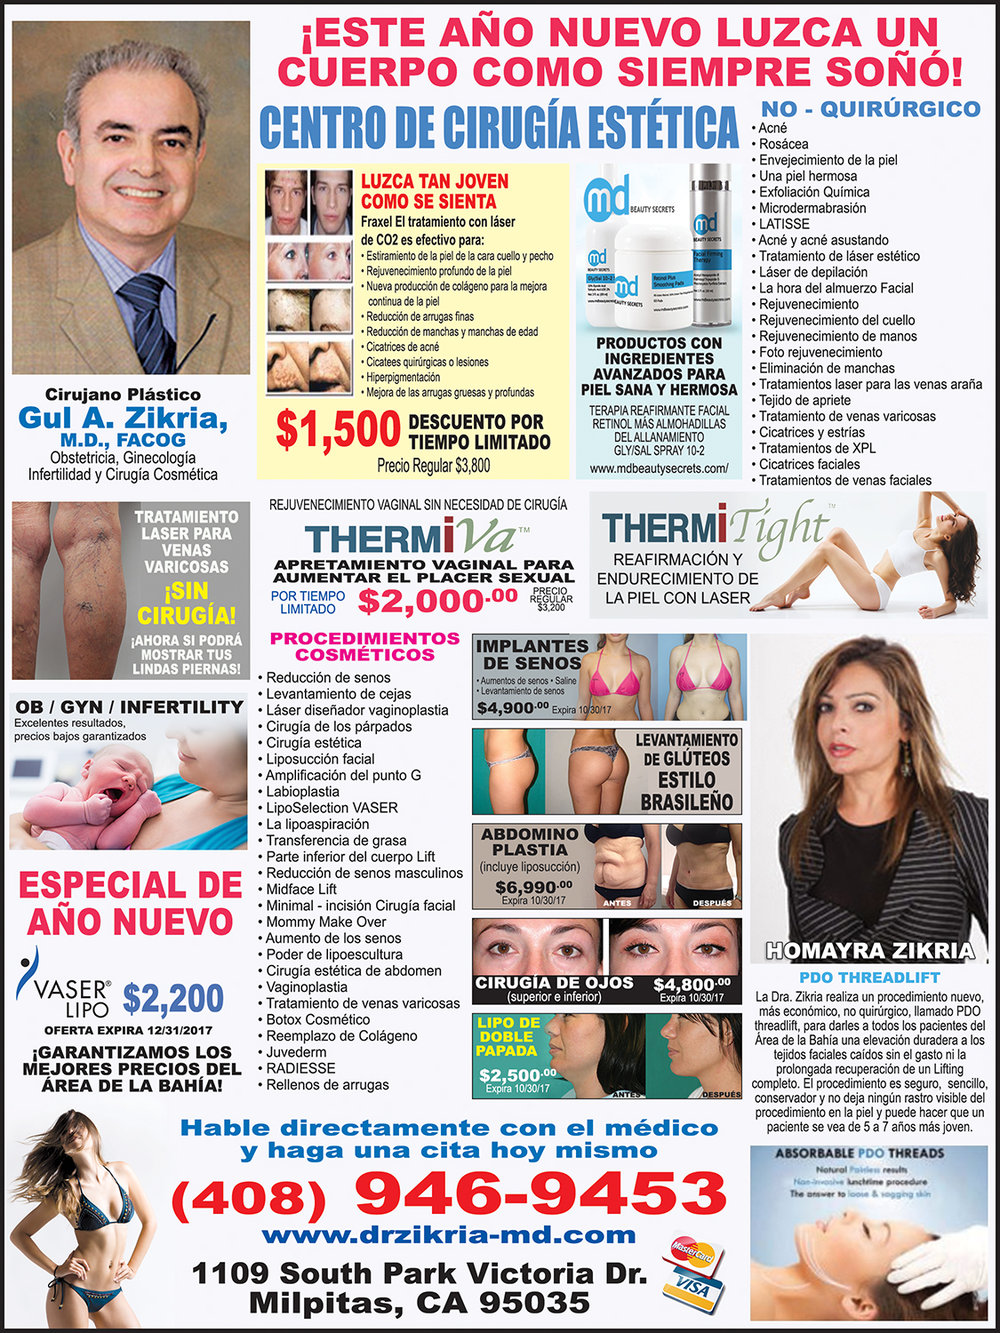 Cosmetic Surgery Center - Gul A Zikria MD 1 Pag -  ENERO 2018.jpg